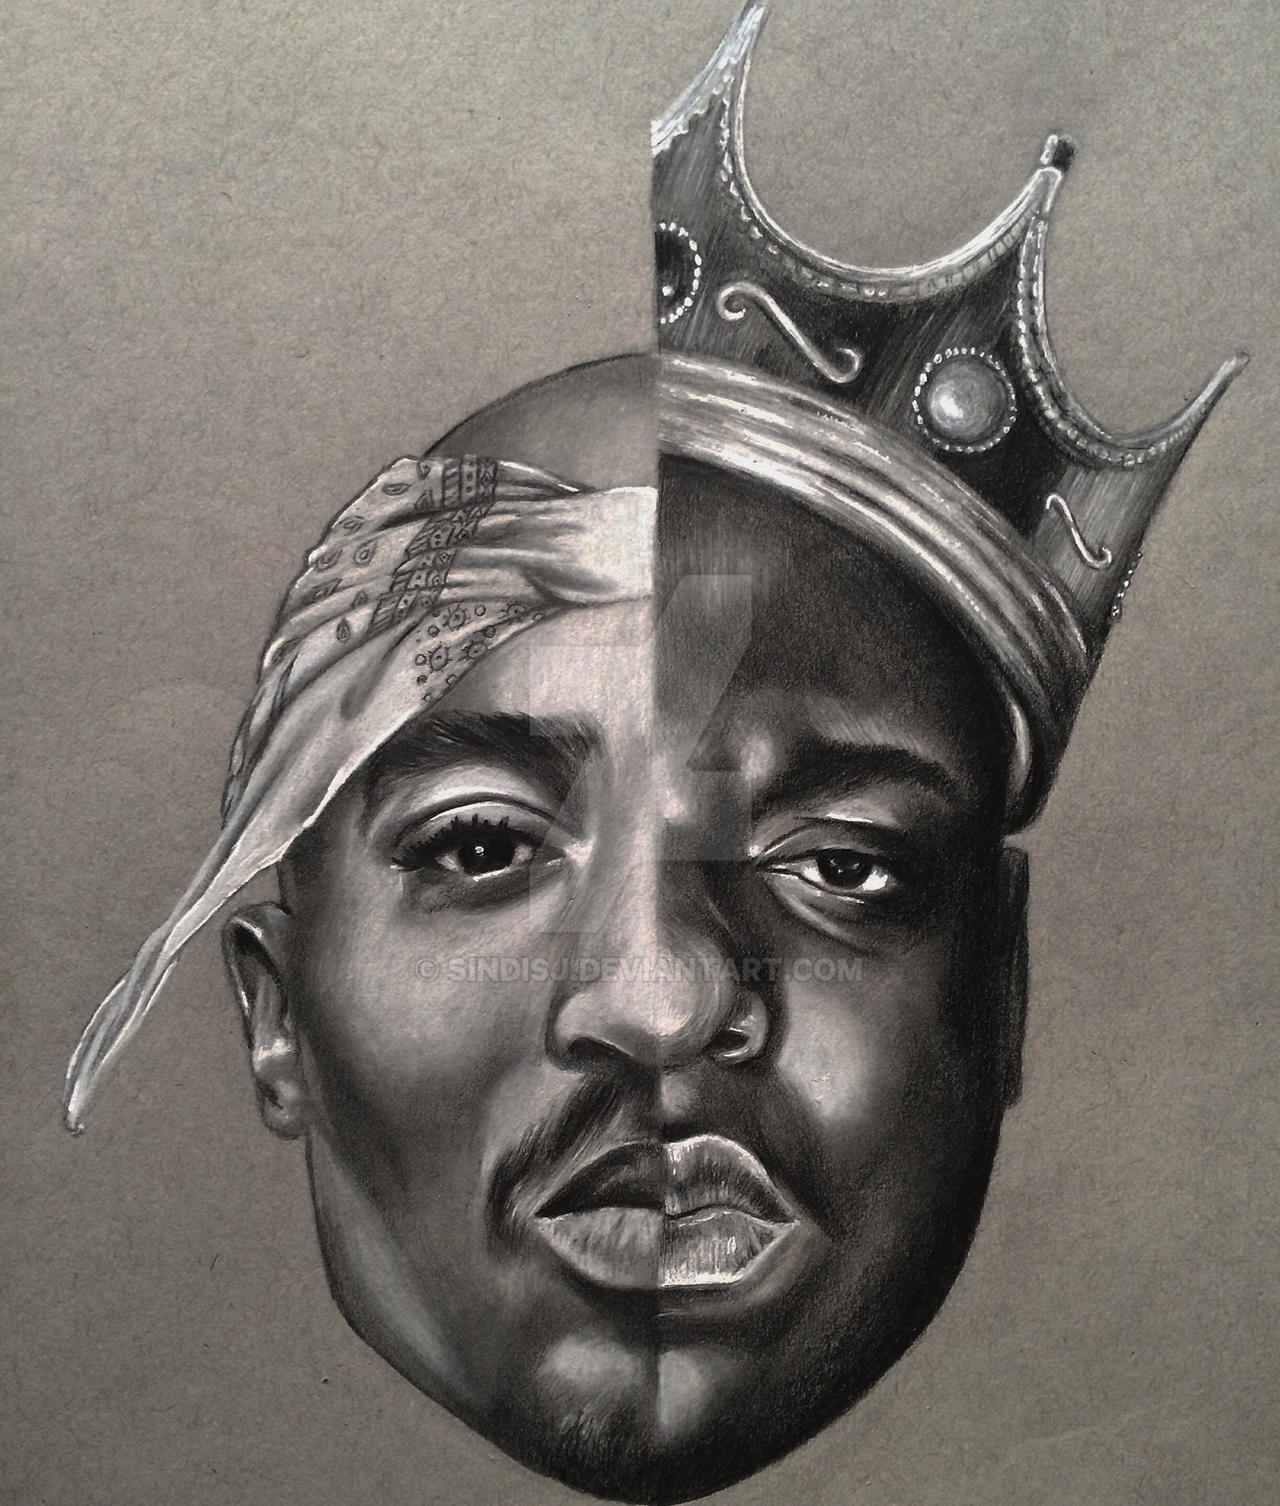 Tupac / Biggie by sindisj on DeviantArt